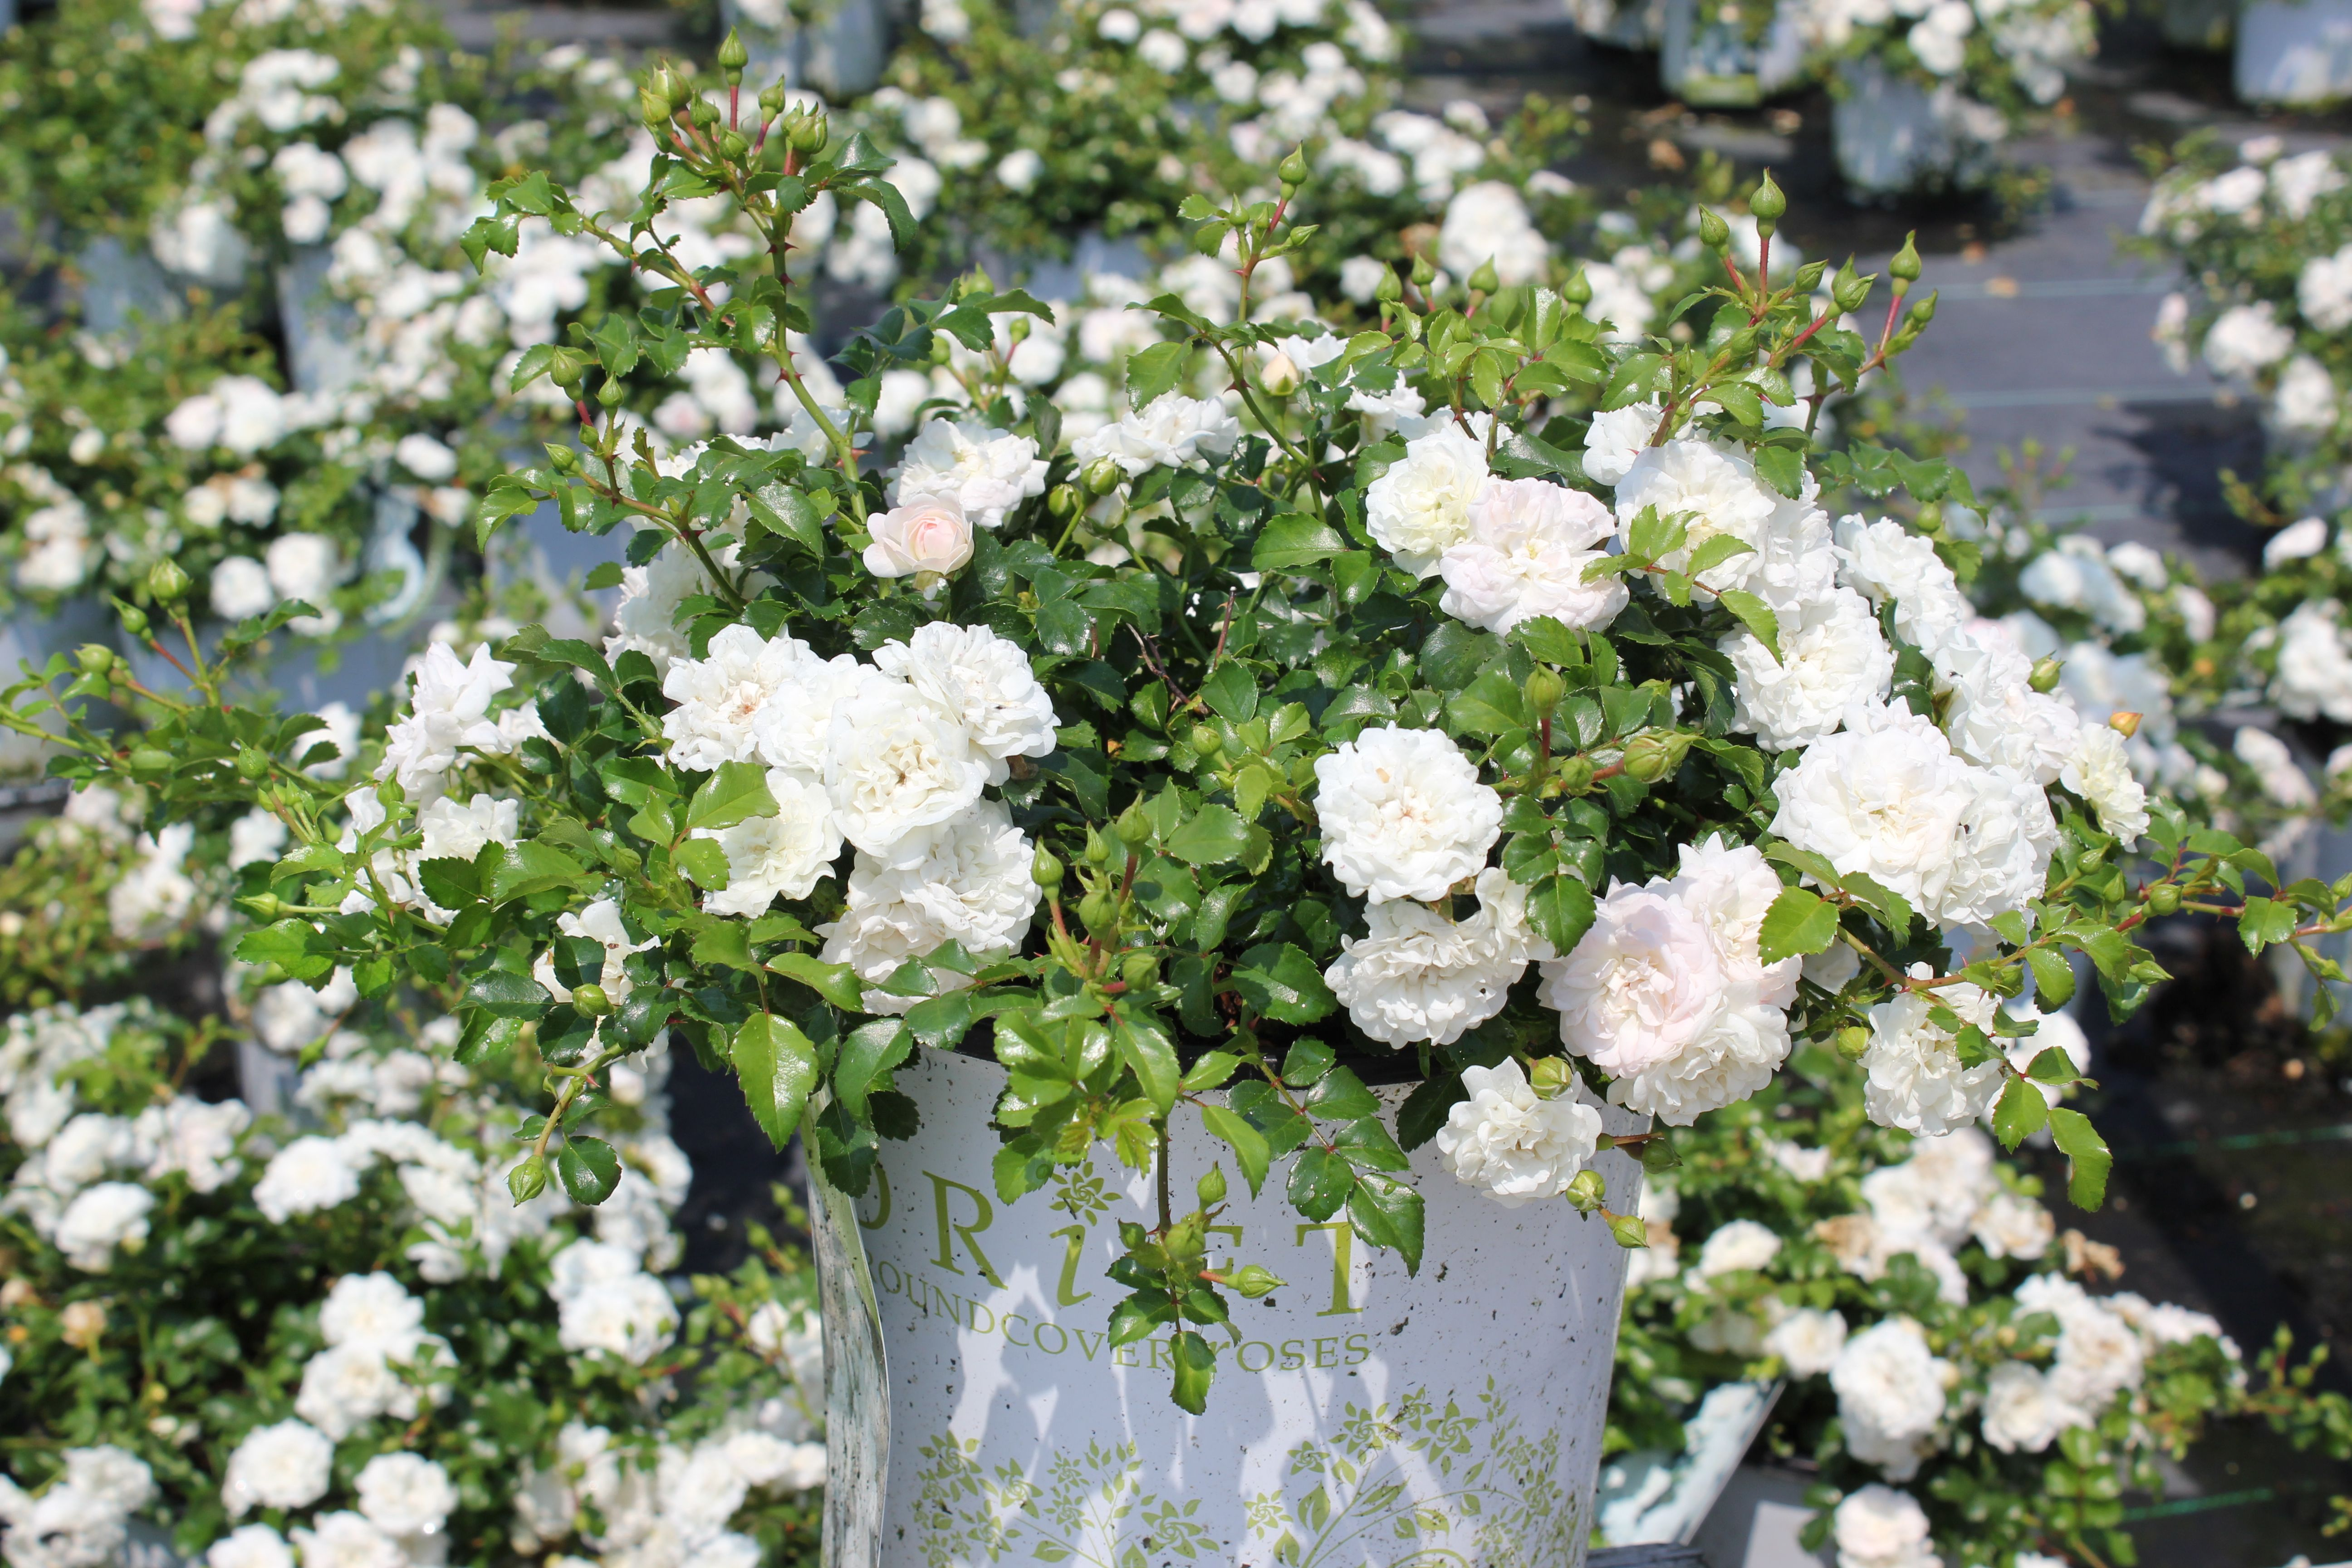 Icy Drift Roses Great Groundcover Cool Plants Pinterest